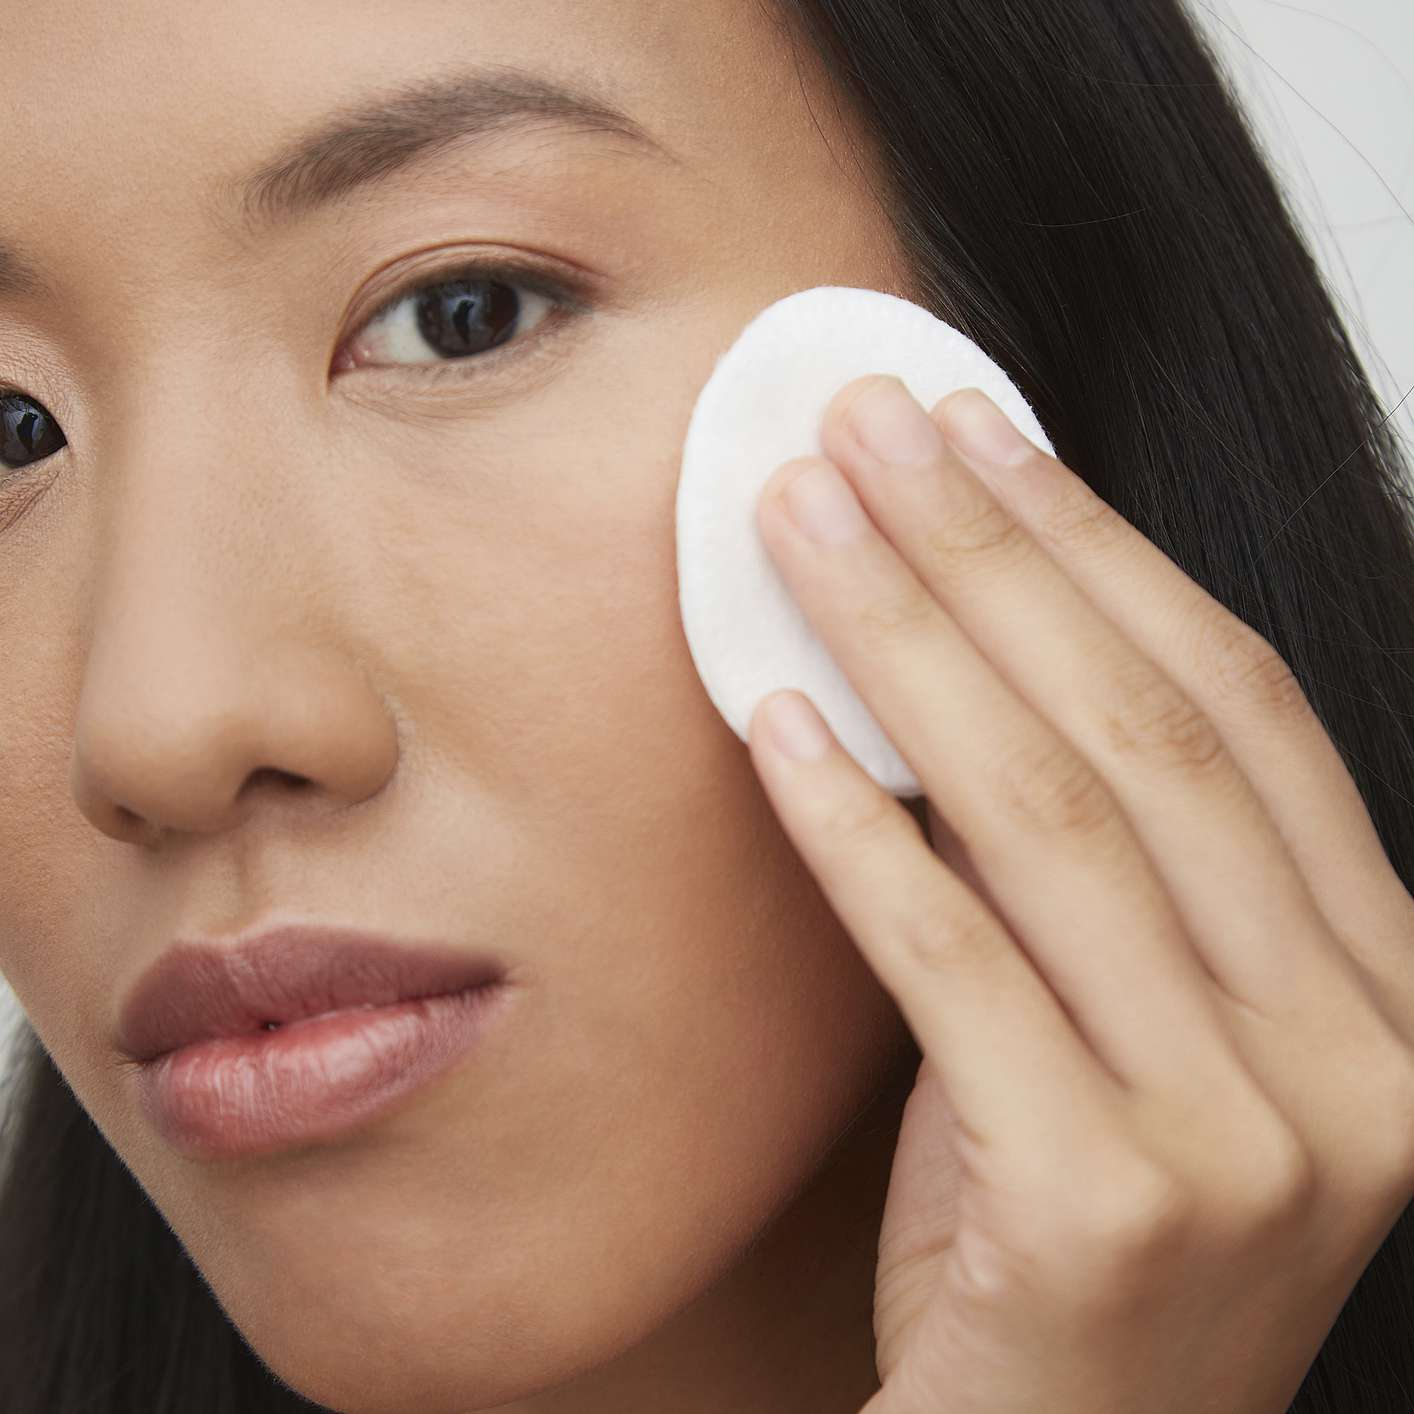 woman removing makeup with a cotton round